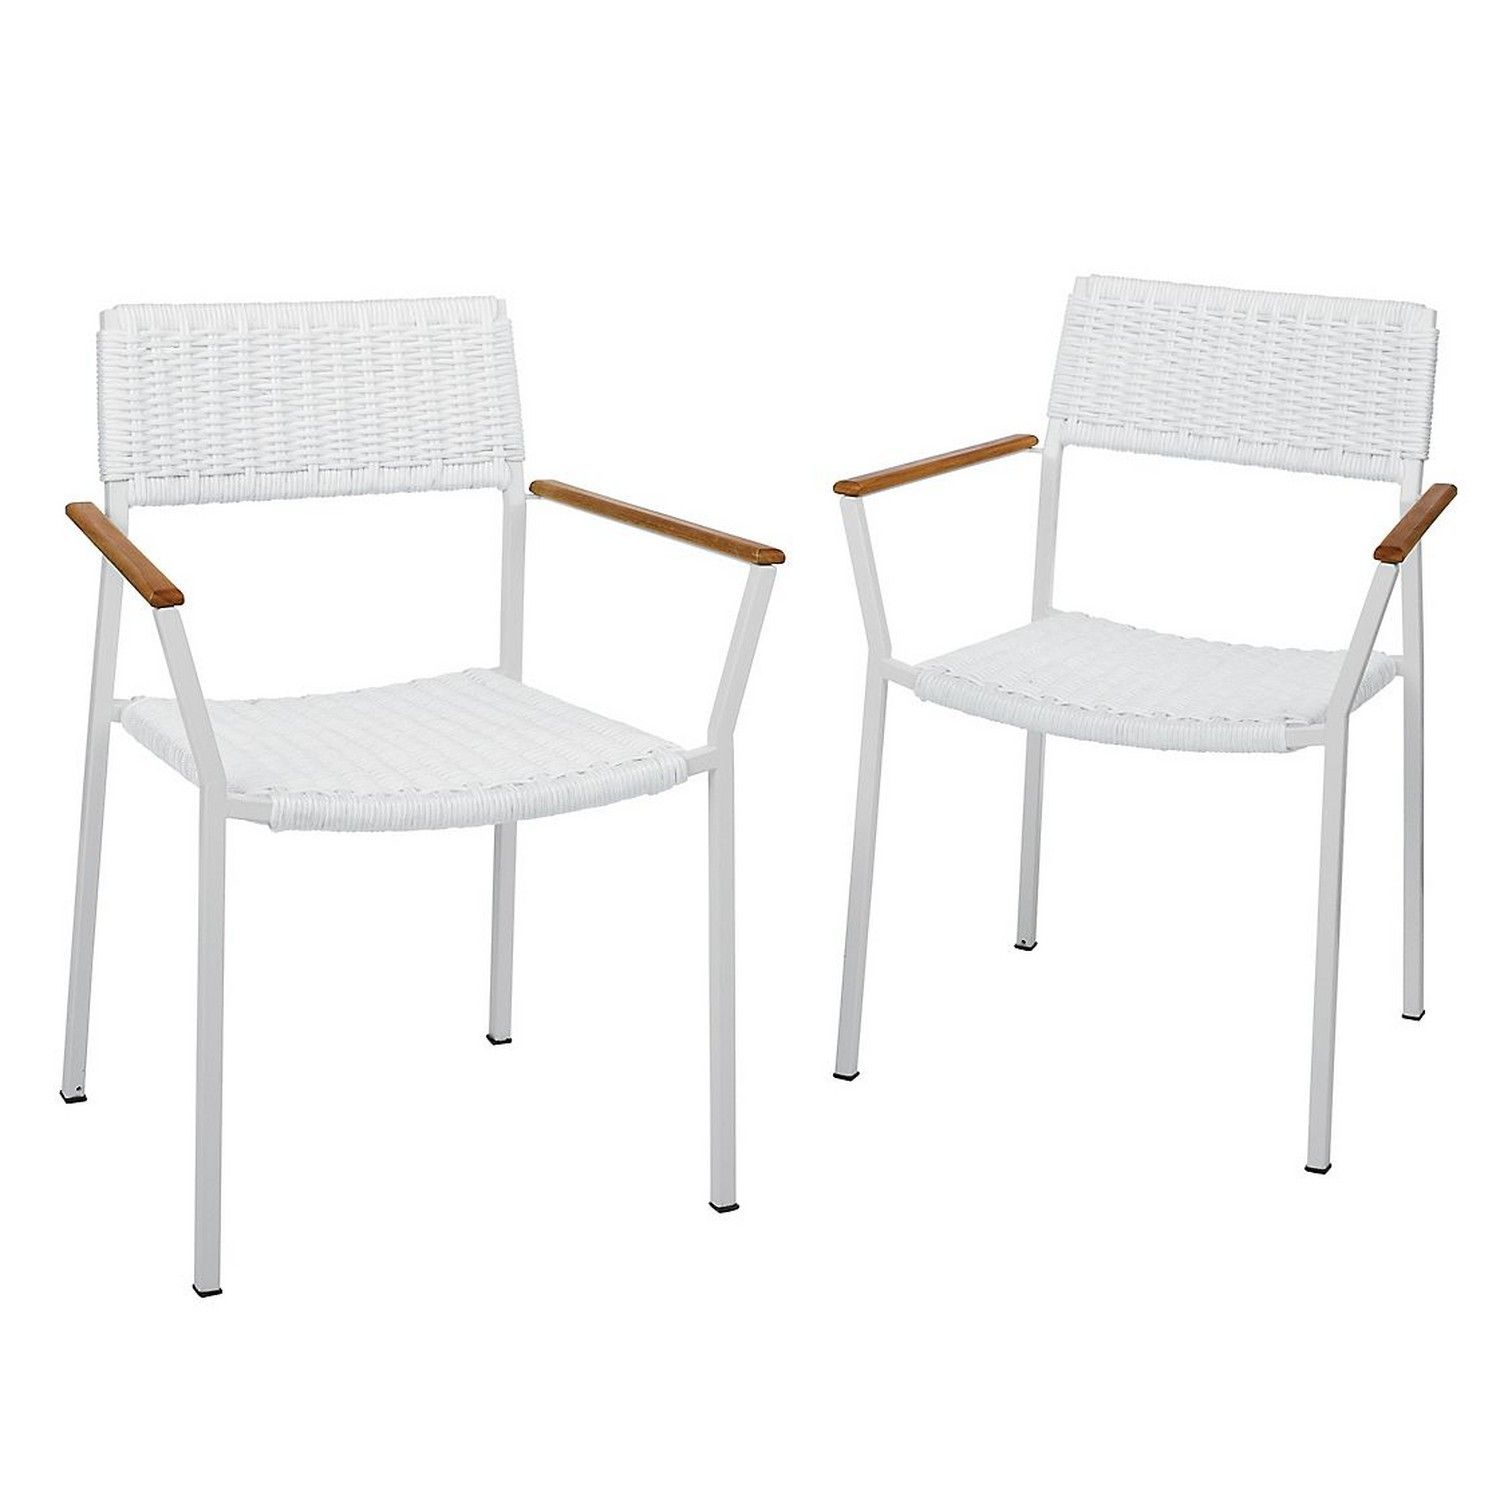 Prime Pair Of Stackable Outdoor Chairs Crafted With Powder Coated Lamtechconsult Wood Chair Design Ideas Lamtechconsultcom